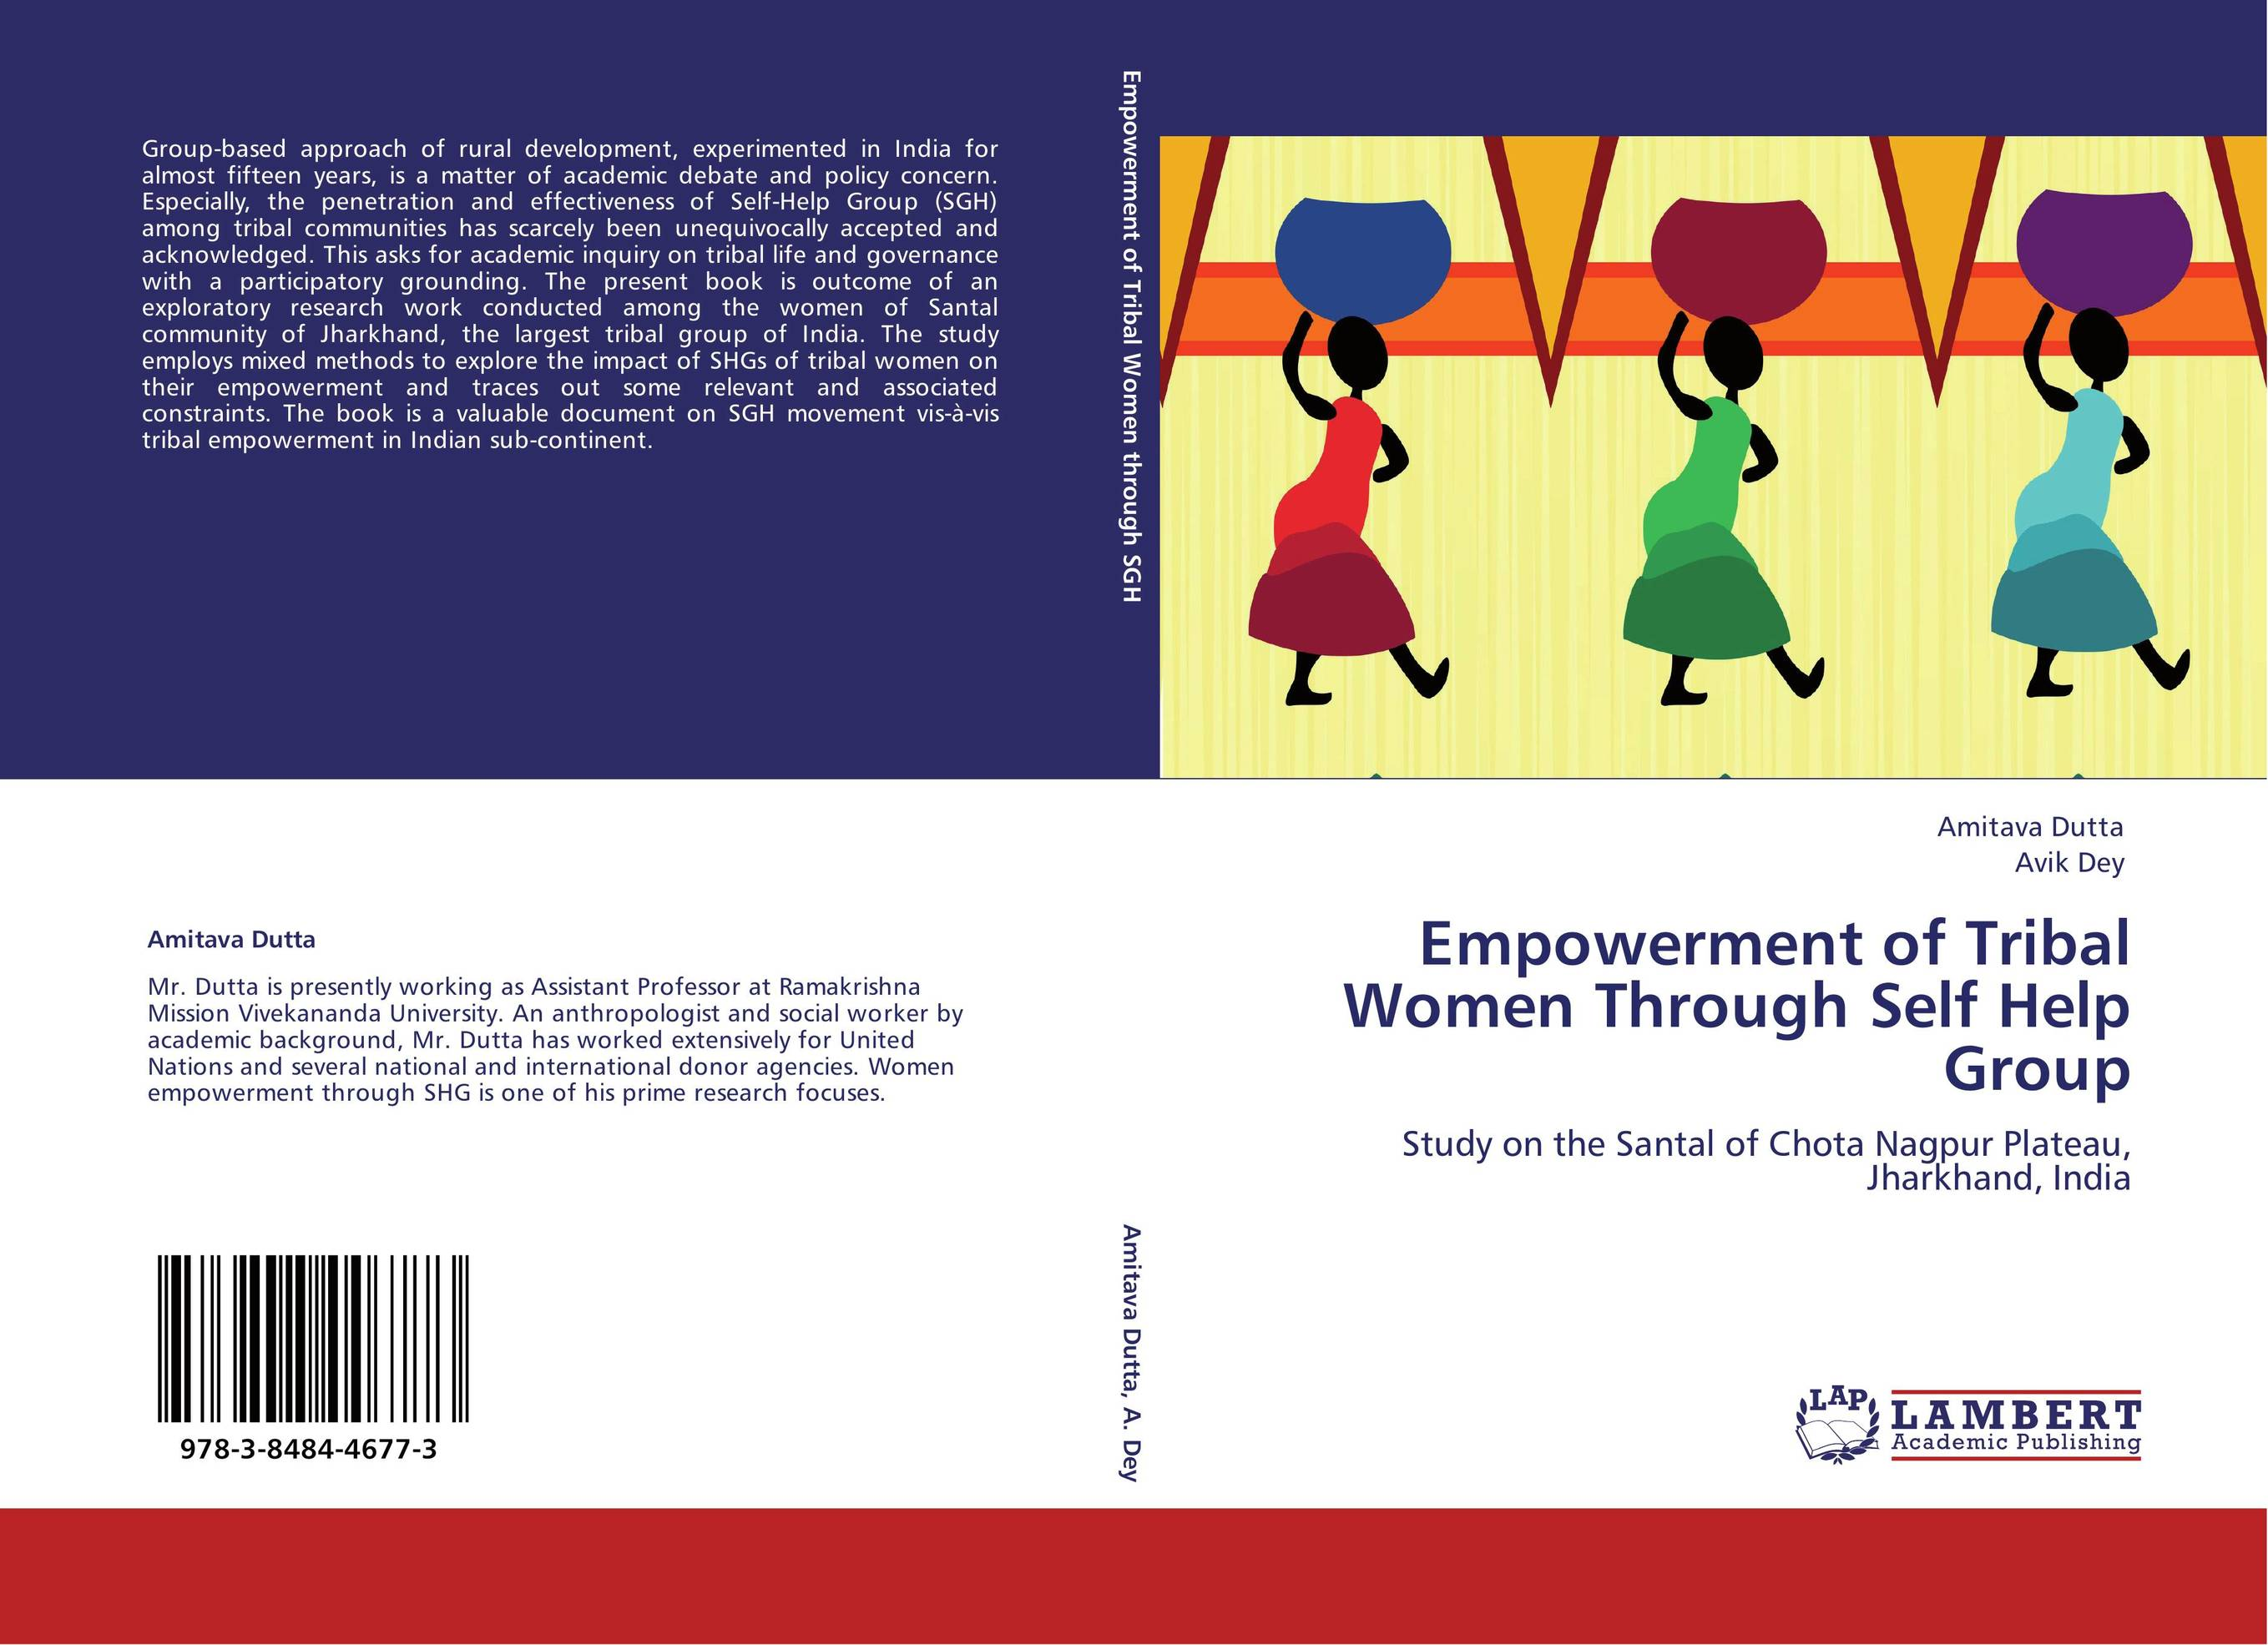 paper presentation on women empowerment and Women empowerment in bangladesh women empowerment in bangladesh means giving women of the country the power to rule and govern their own lives, away from traditional and social constraints the women empowerment movement in bangladesh focuses on giving women the power and authority they need to be men's equals.